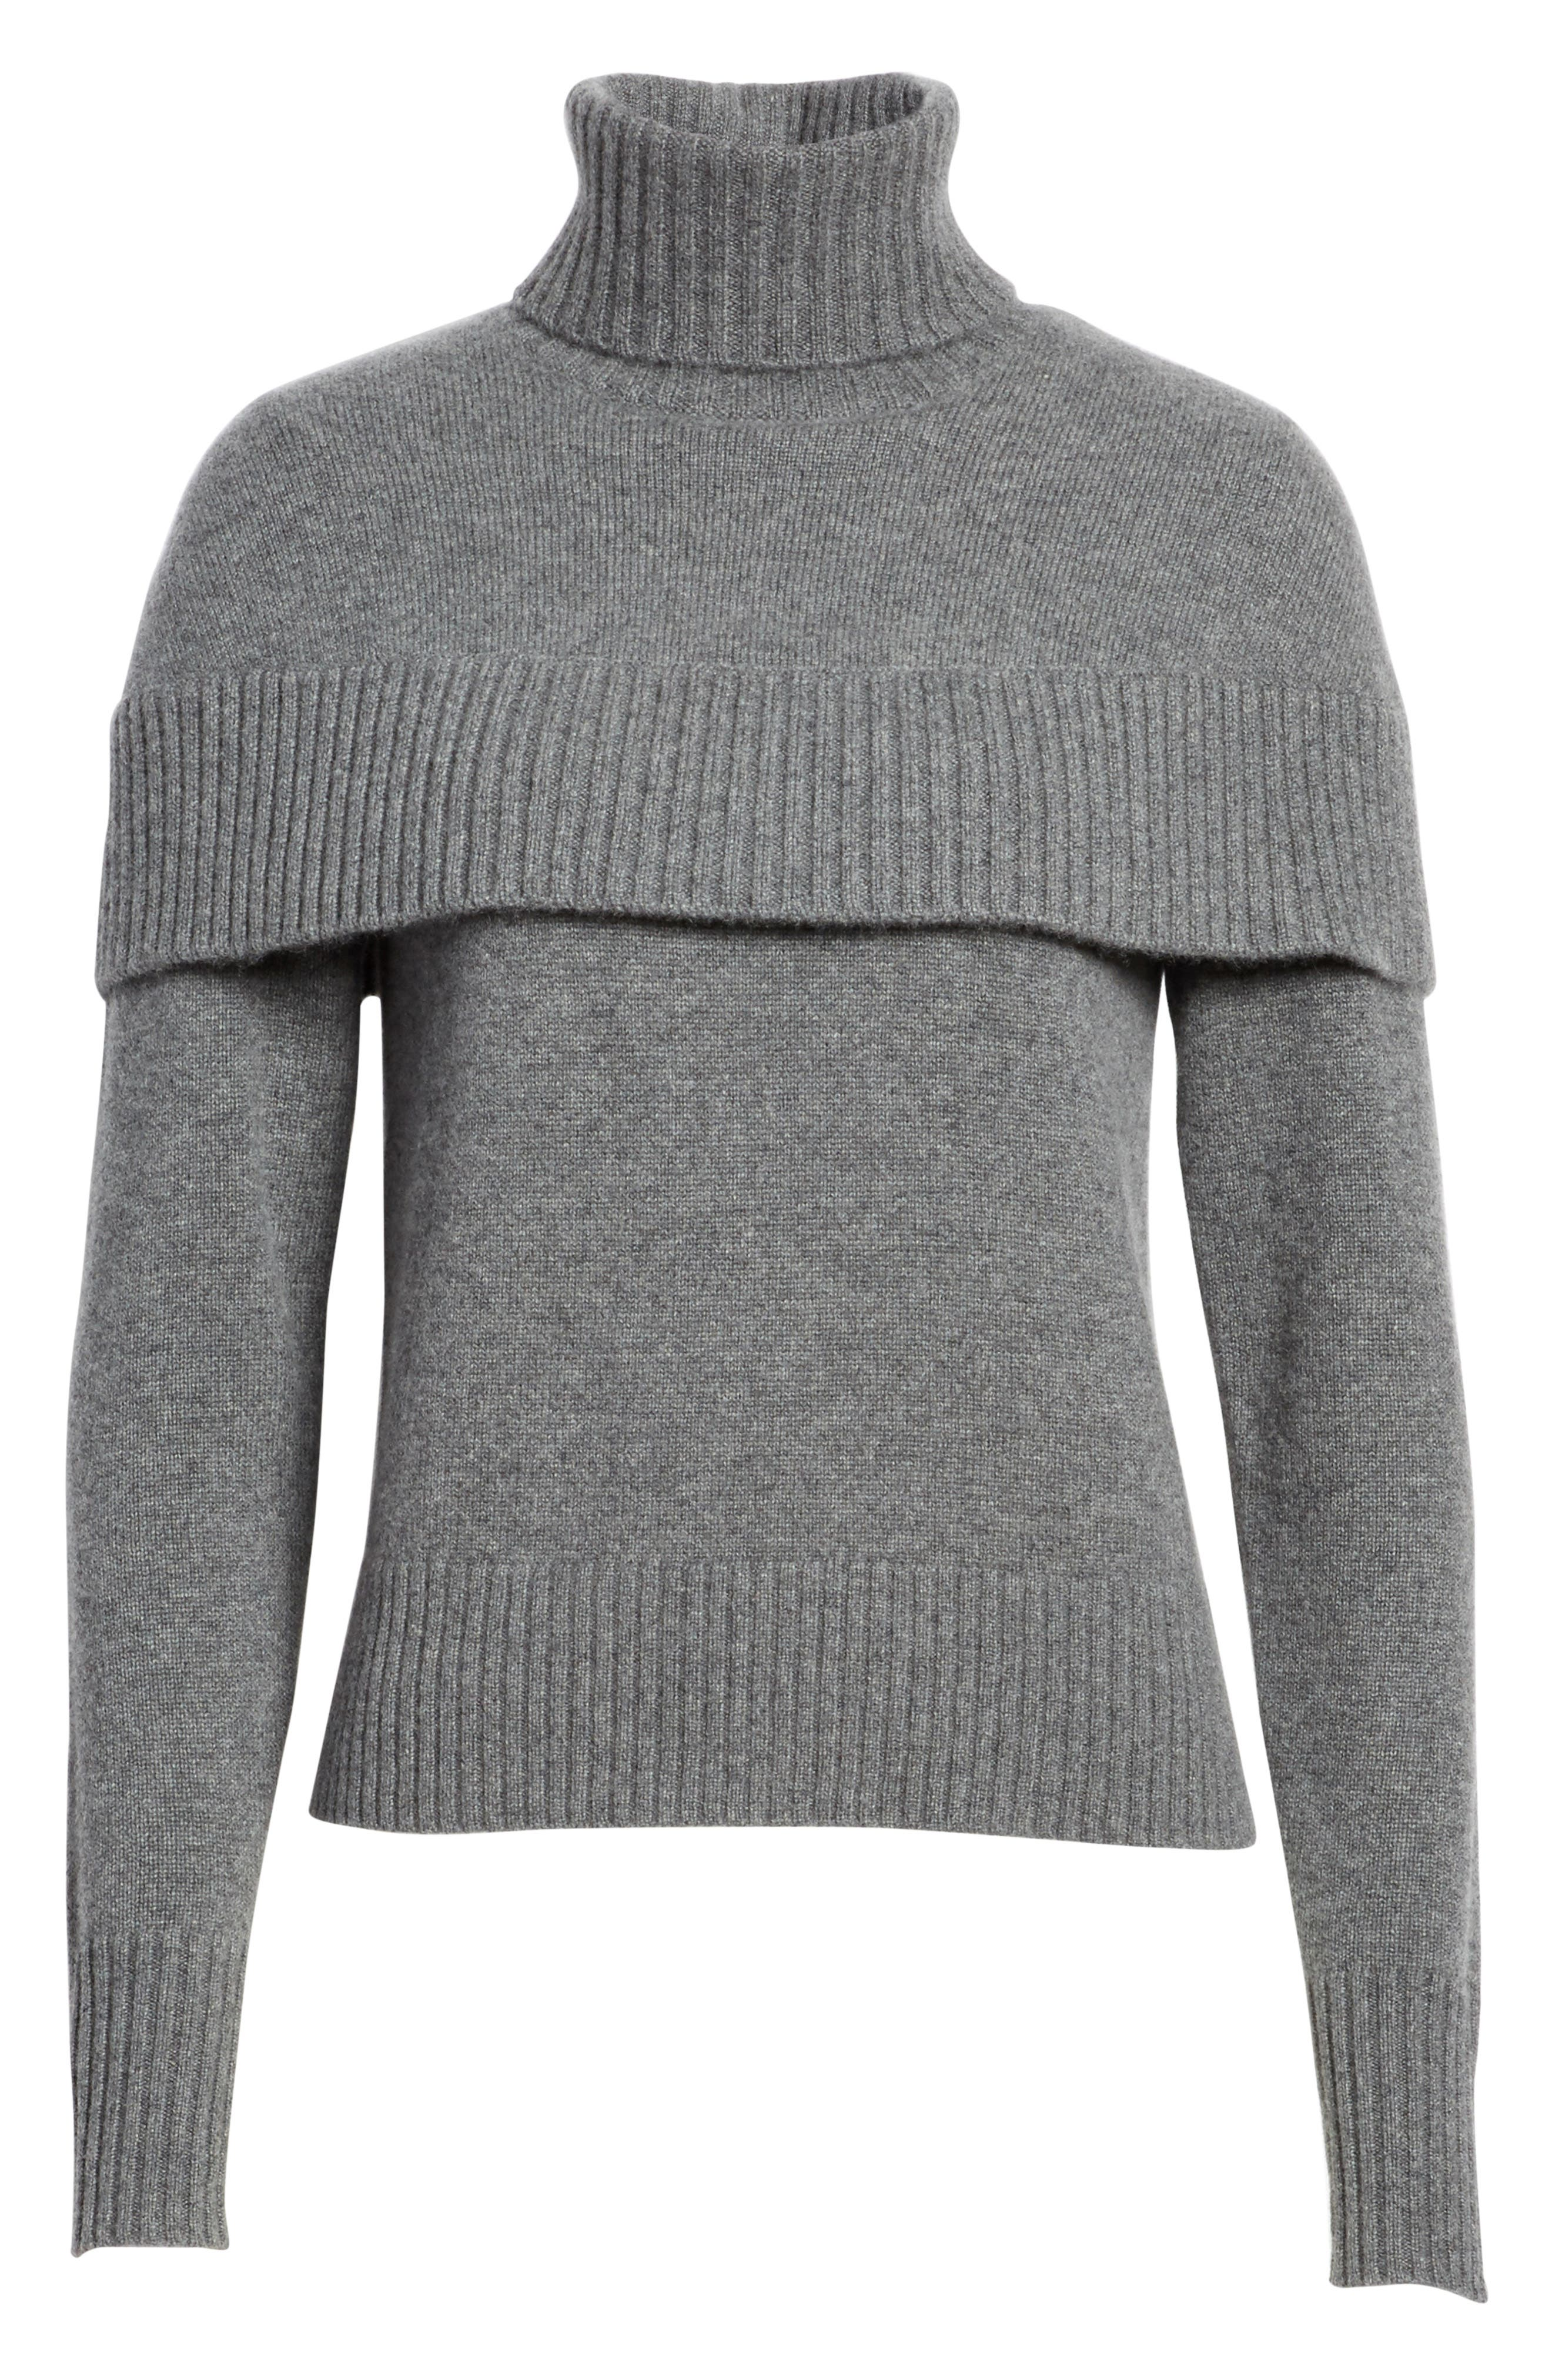 Cashmere Mini Cape Turtleneck Sweater,                             Alternate thumbnail 6, color,                             Charcoal Black